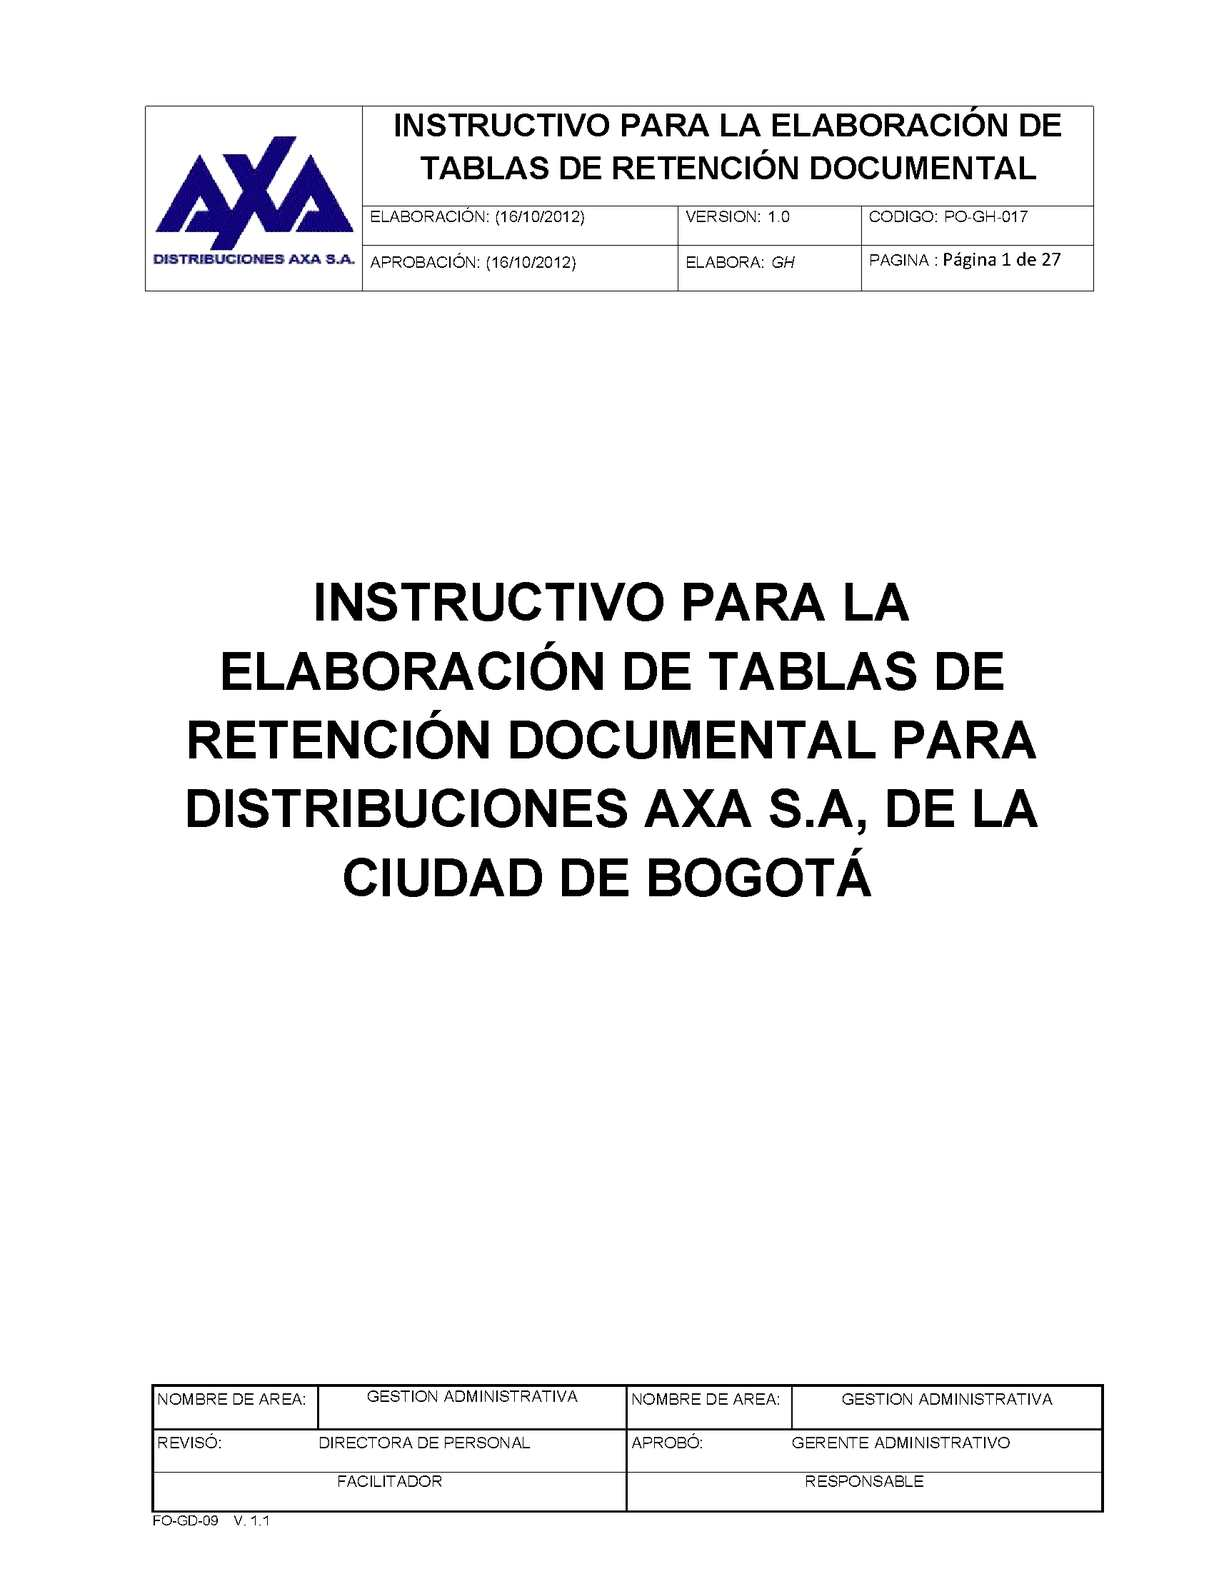 MANUAL PARA LA APLICACIÓN DE TABLAS DE RETENCION DOCUMENTAL